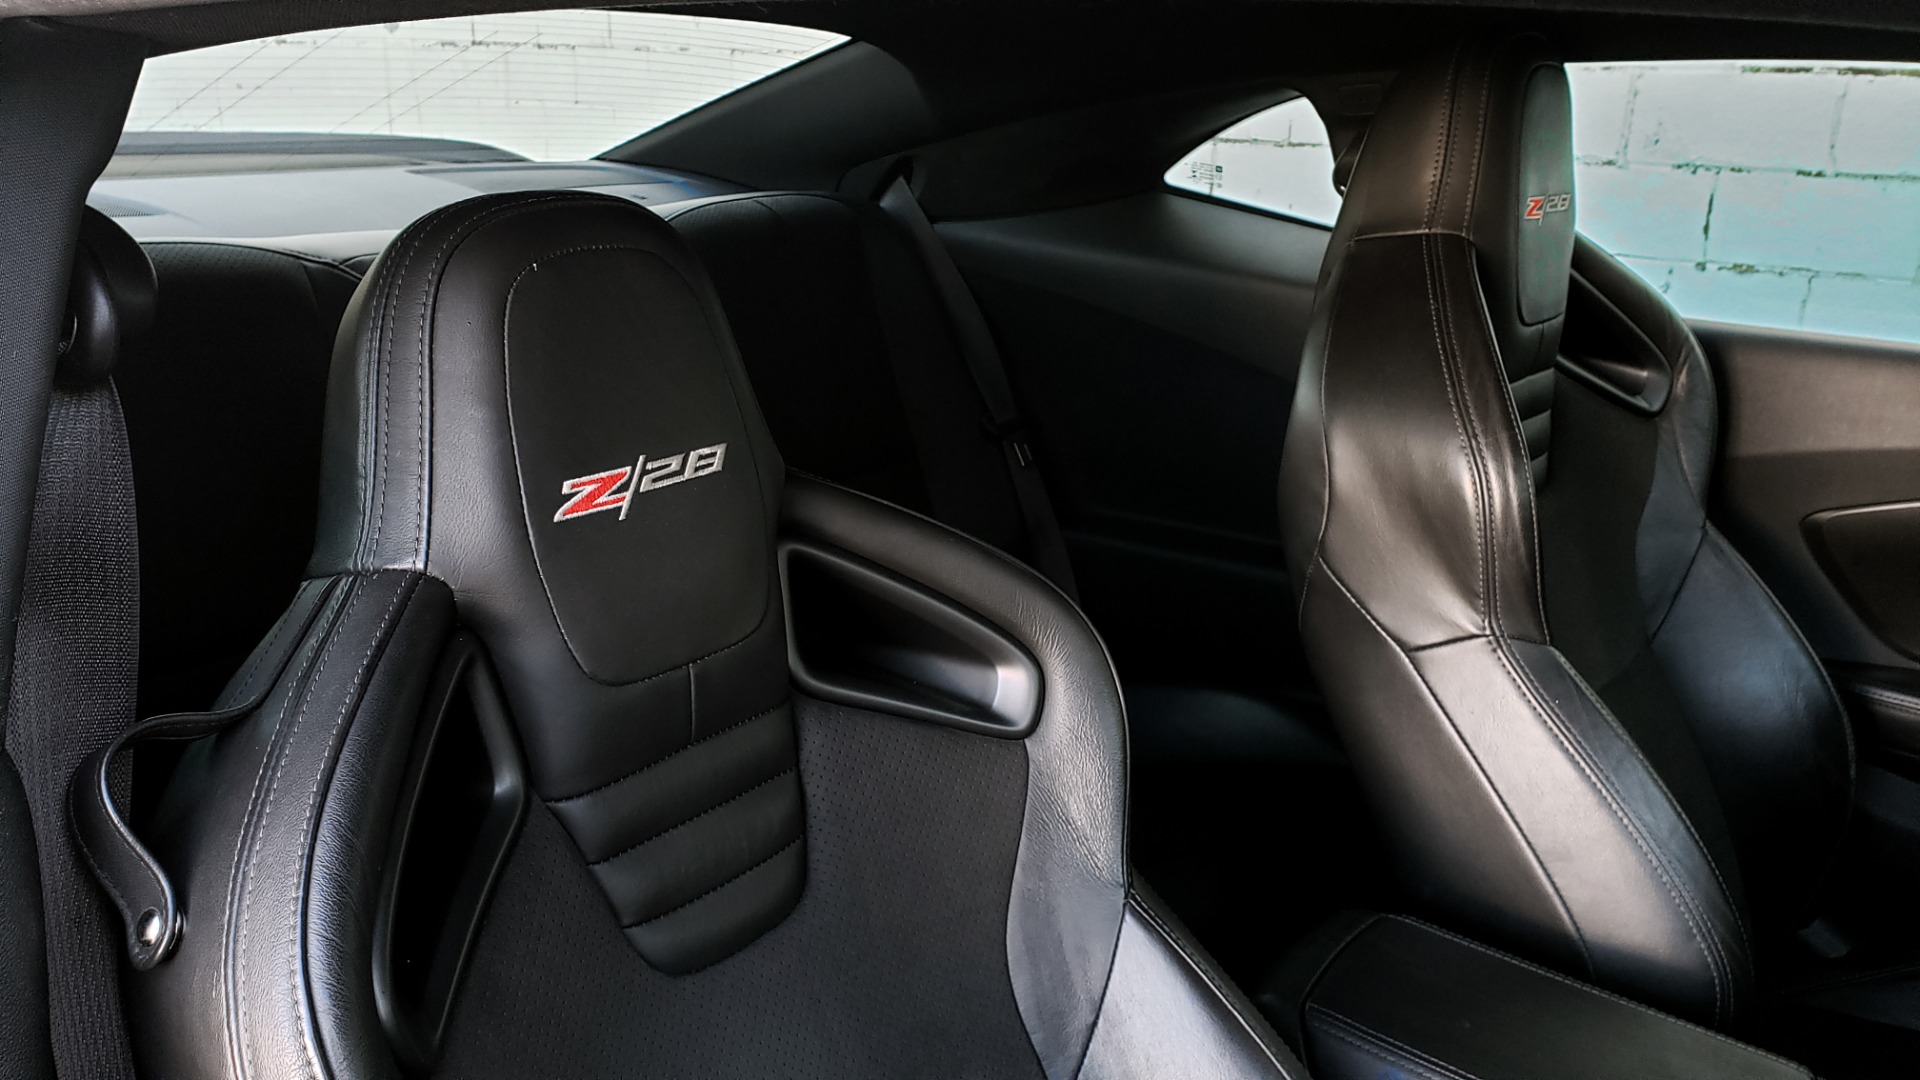 Used 2014 Chevrolet CAMARO Z/28 / 427 7.0L V8 505HP / RADIO / AIR CONDITIONING for sale Sold at Formula Imports in Charlotte NC 28227 82